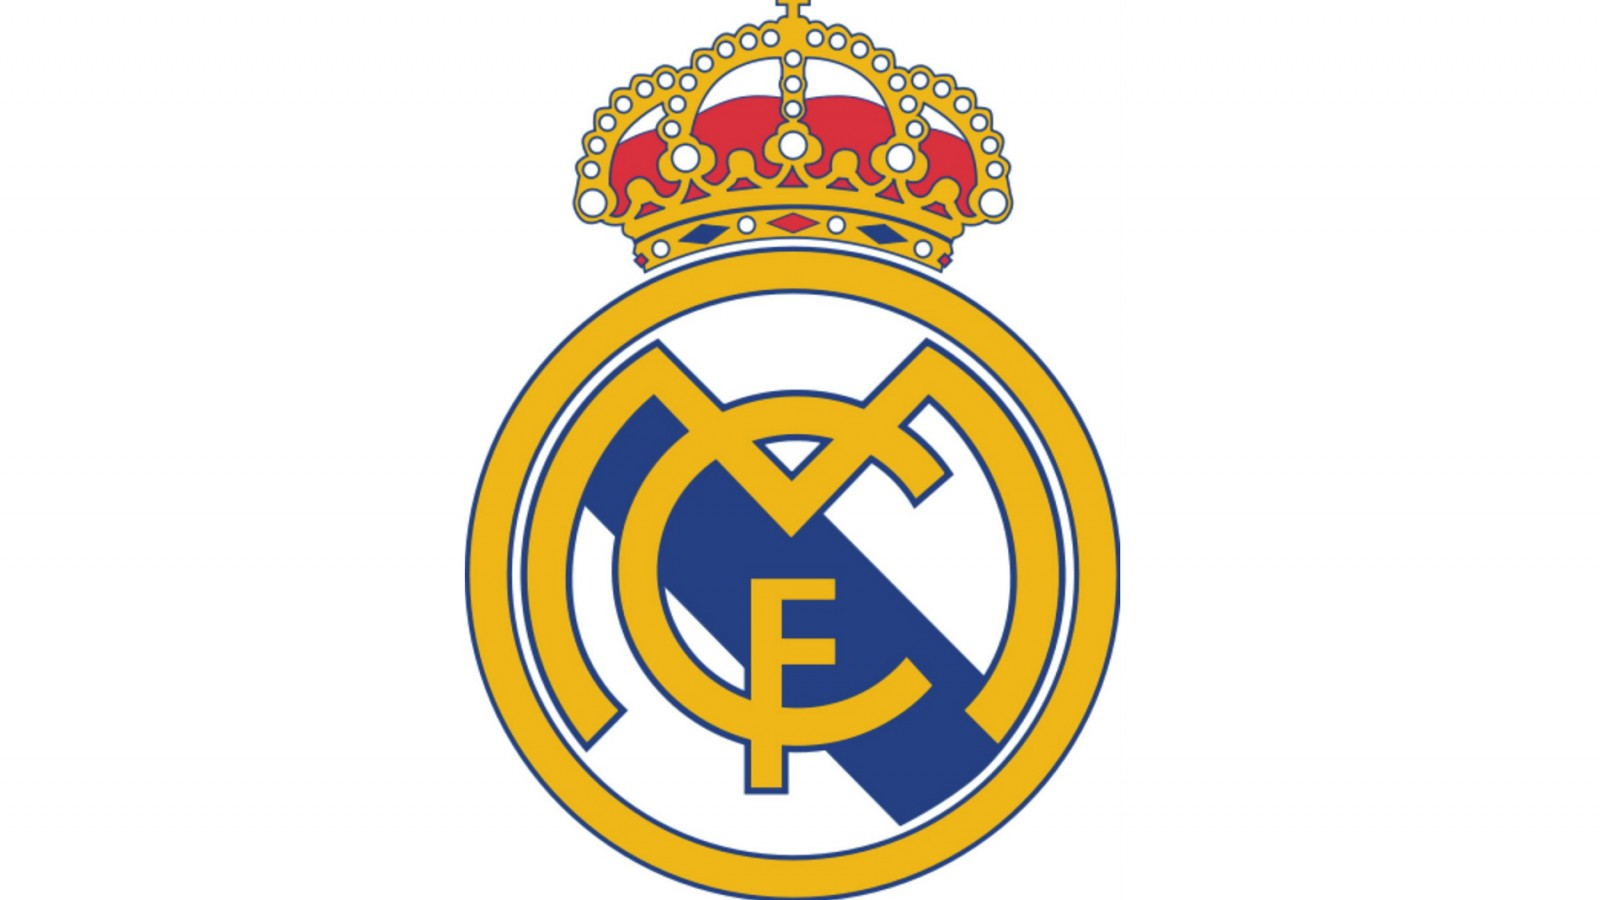 Logo Del Escudo Del Real Madrid Escudo-del-real-madrid-cf